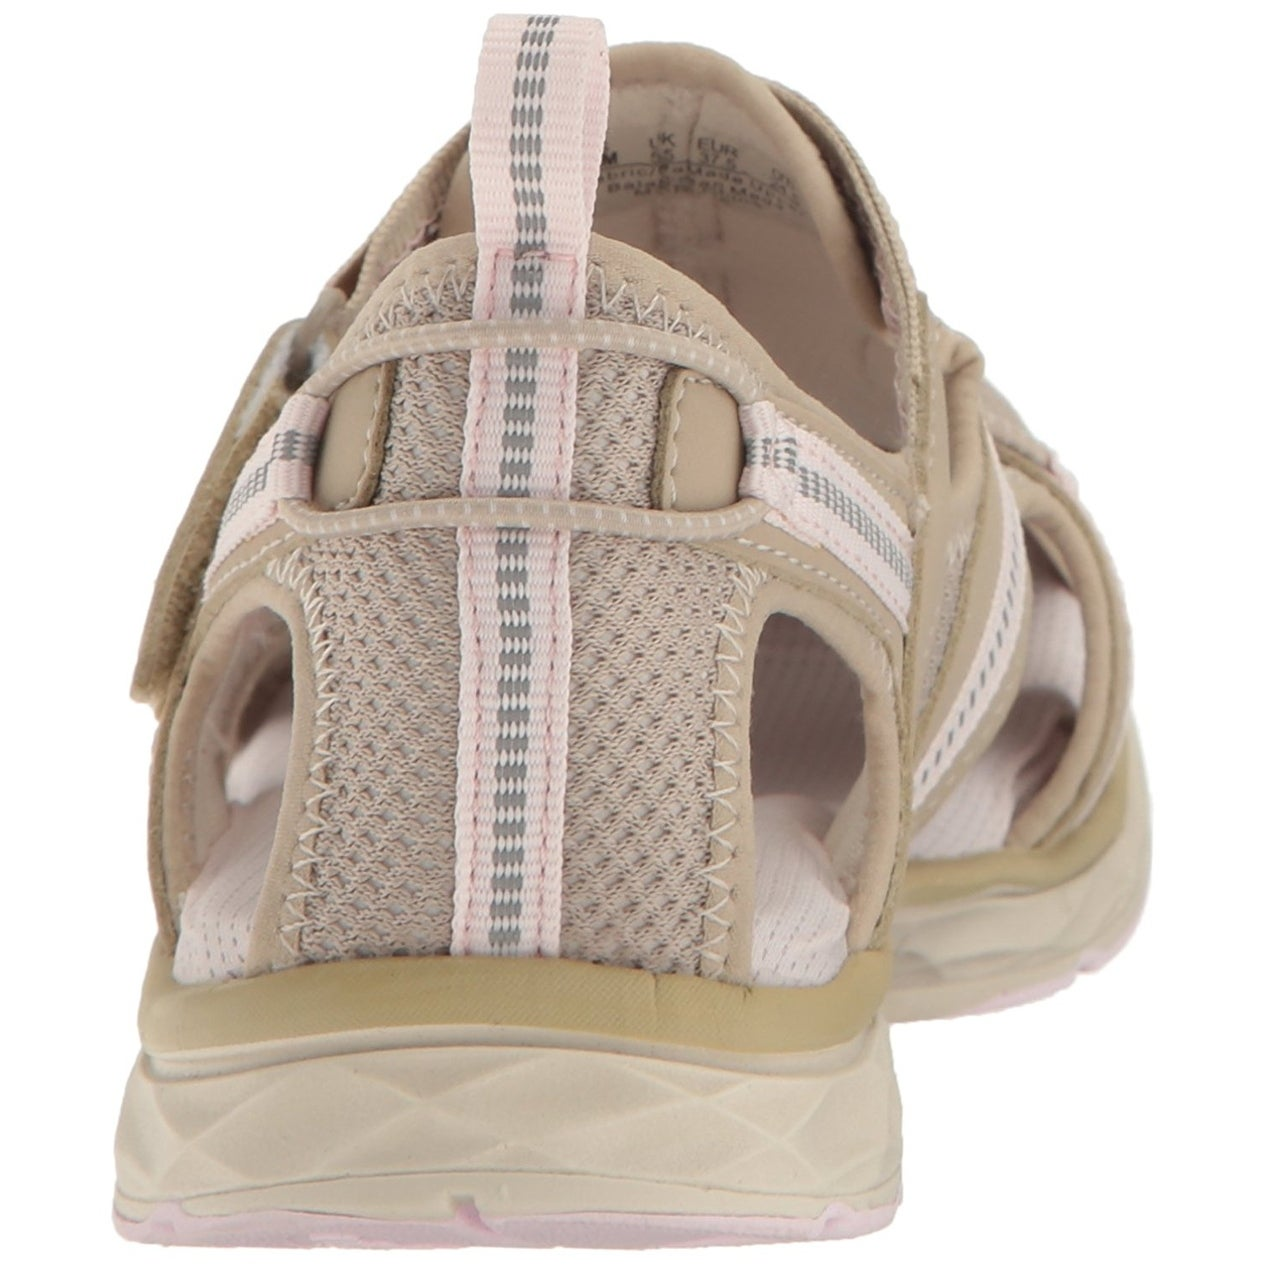 e1a7e9a71fa5 Shop Dr. Scholl s Women s Archie Fisherman Sandal - moonstone pink nubuck -  Free Shipping On Orders Over  45 - Overstock - 17637341